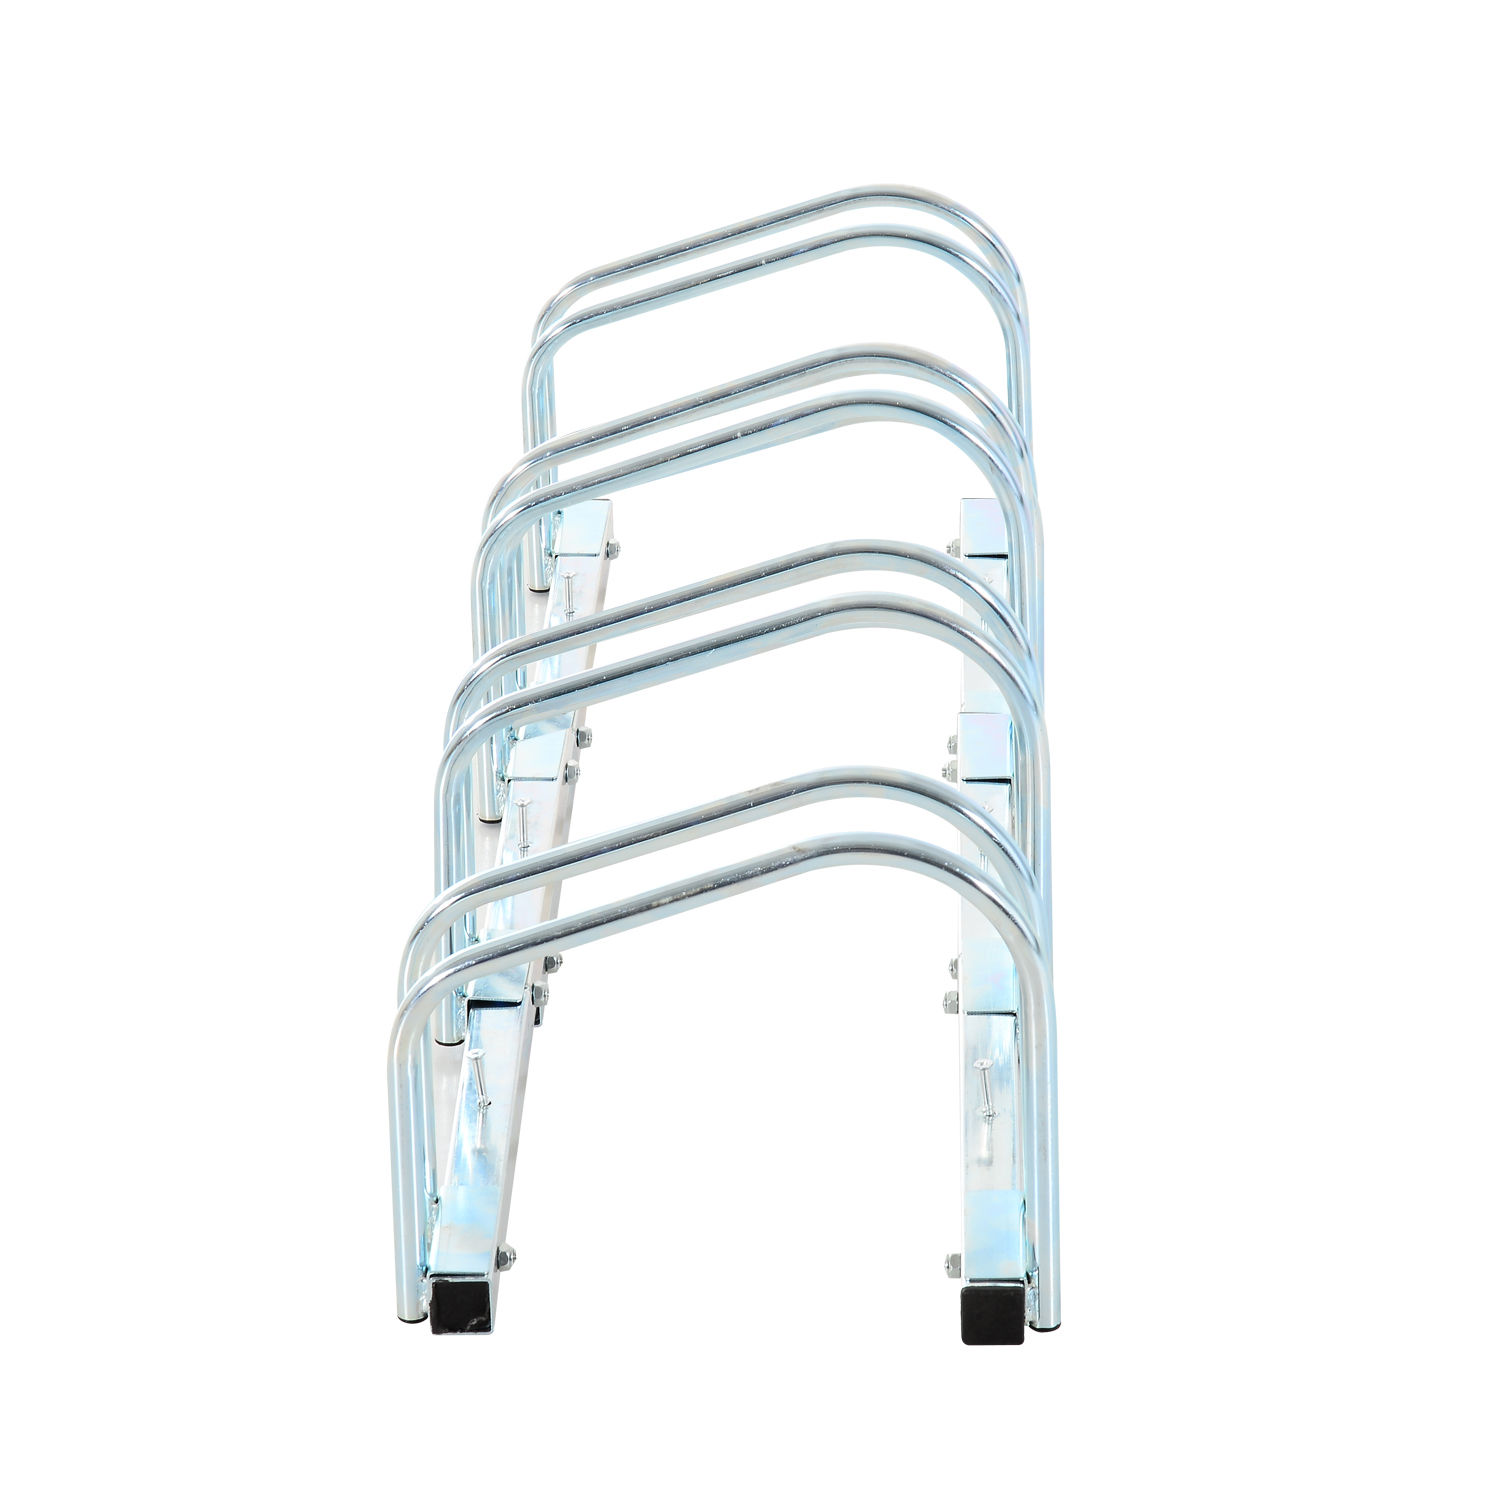 Bicycle-Bike-Parking-Cycle-Floor-Rack-Stand-Storage-Mount-Holder-Steel-Pipe miniatura 14